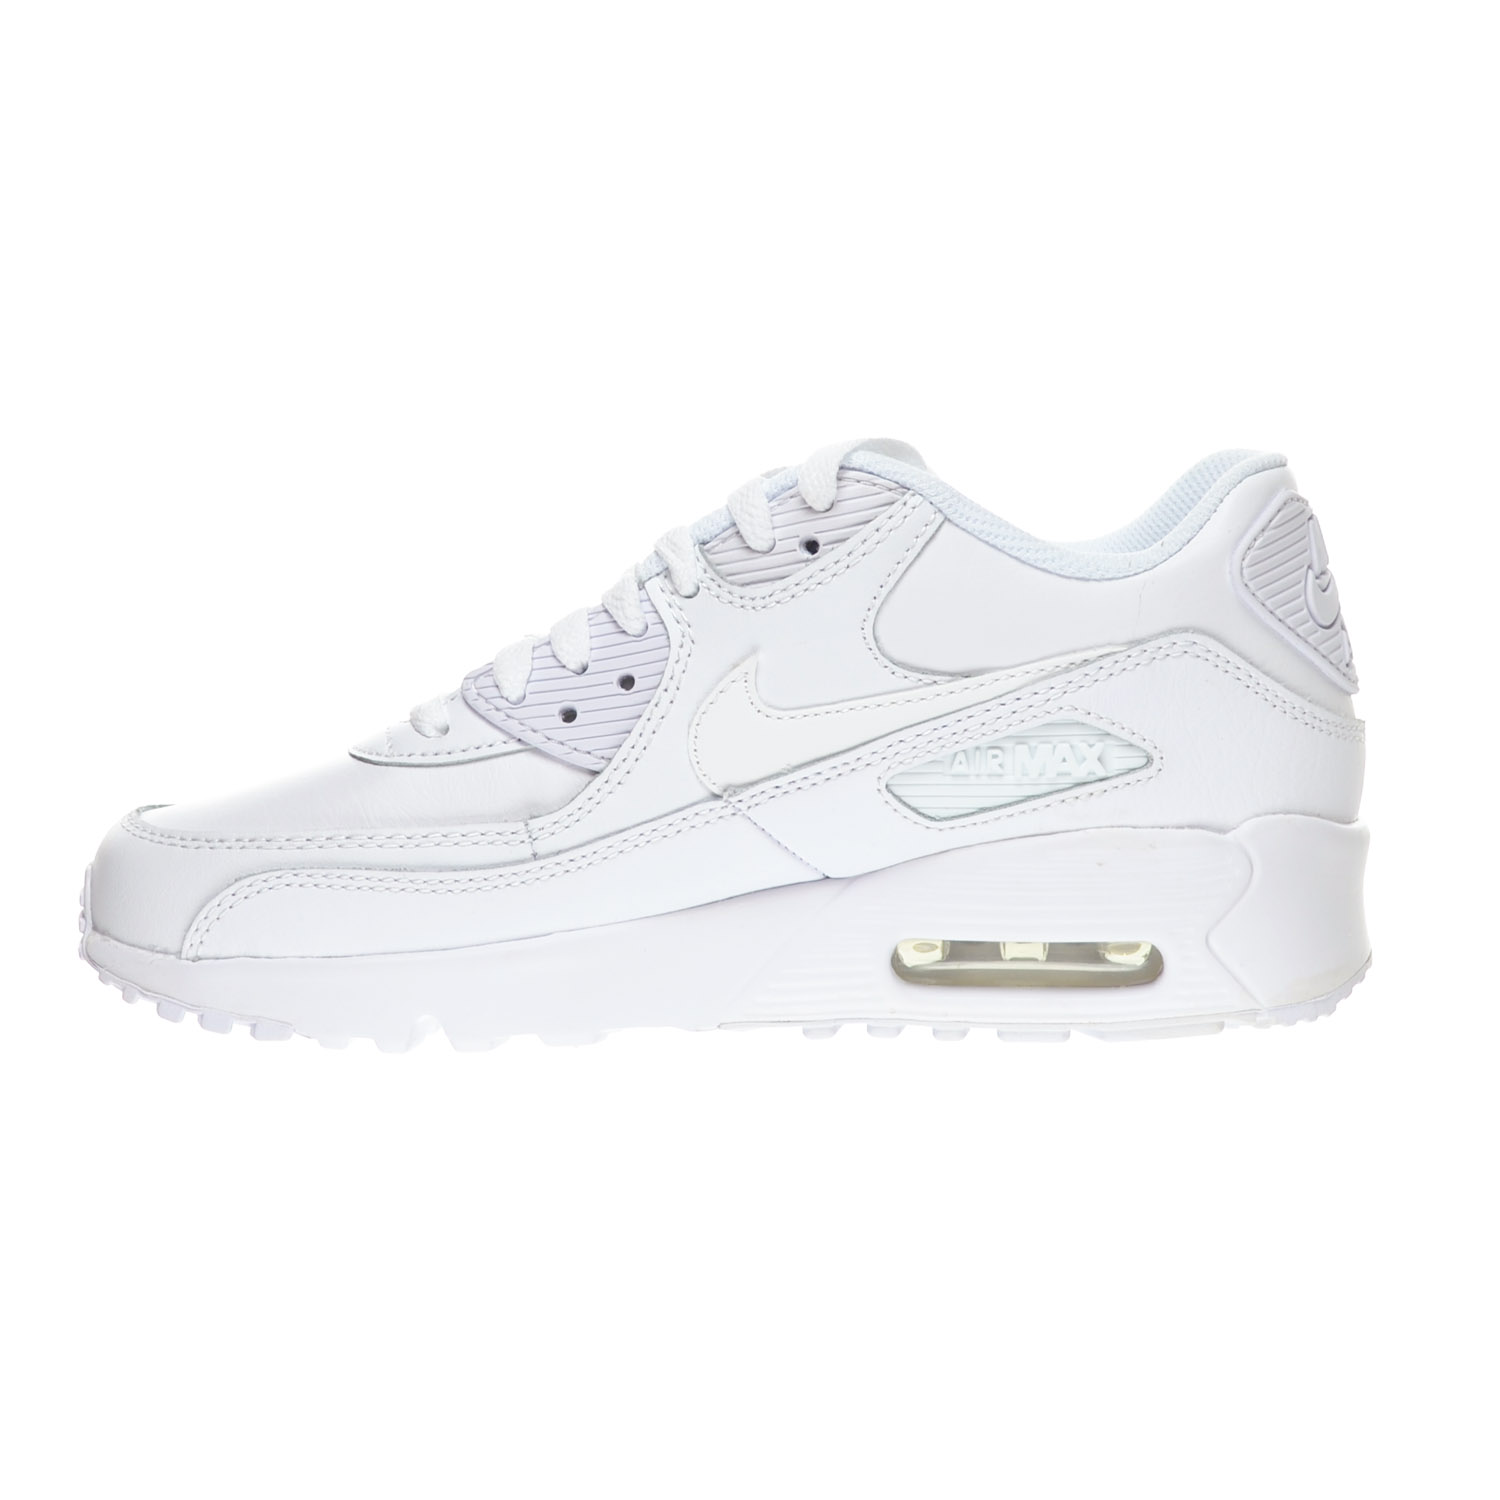 premium selection 10dda 2fcd2 Details about Nike Air Max 90 LTR (GS) Big Kid s Shoes White 833412-100